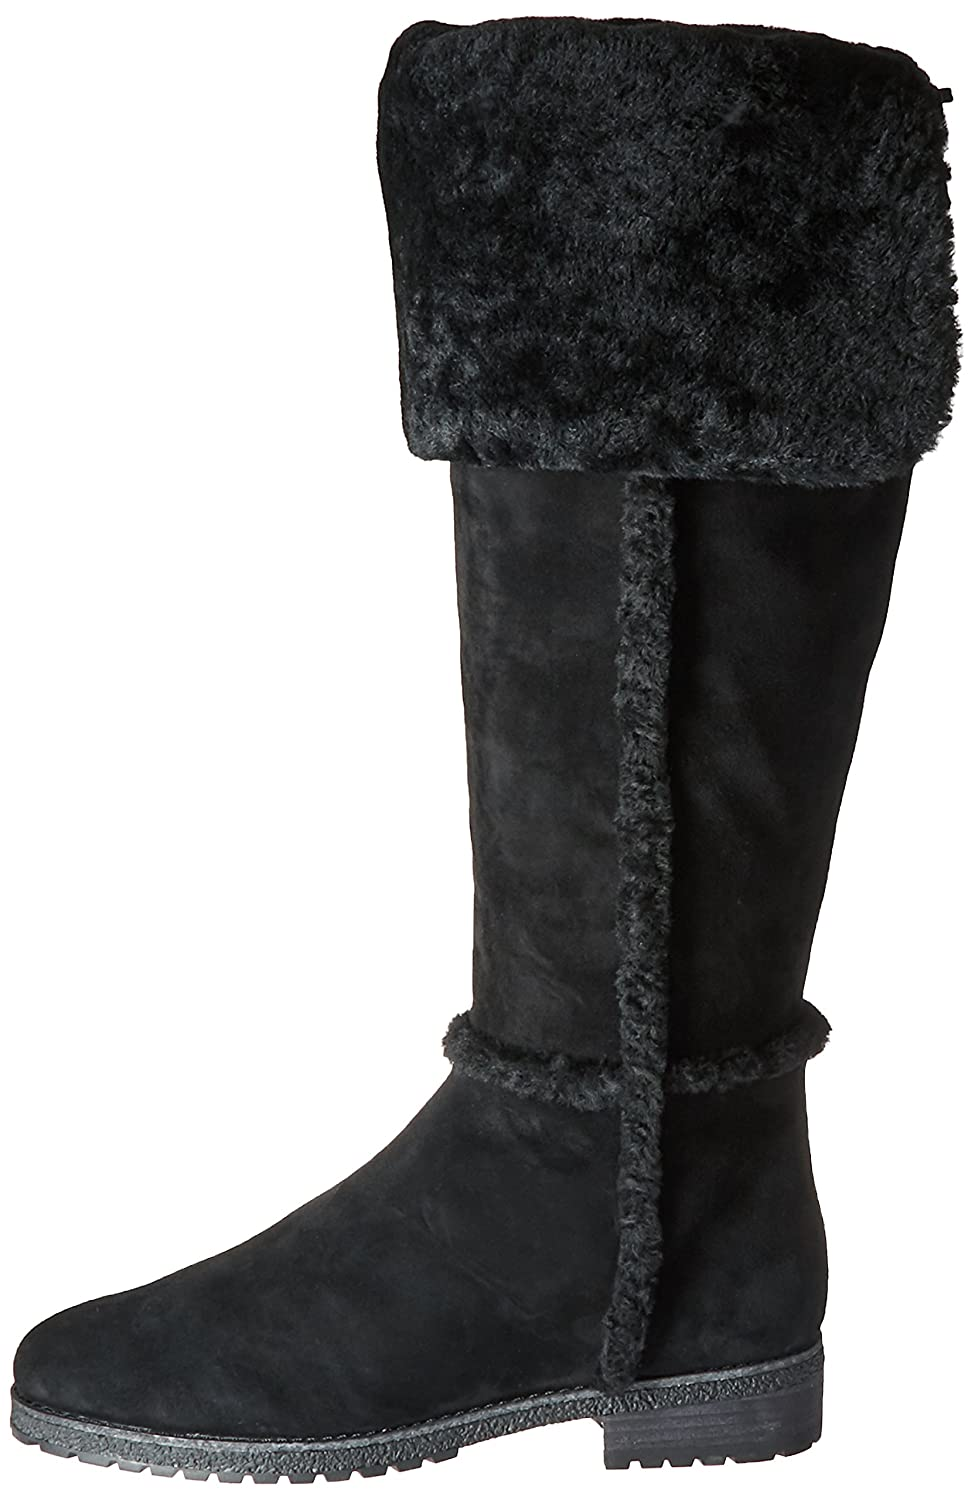 FRYE Women's Tamara Shearling OTK Winter Boot B01BNUX4U8 8.5 B(M) US|Black